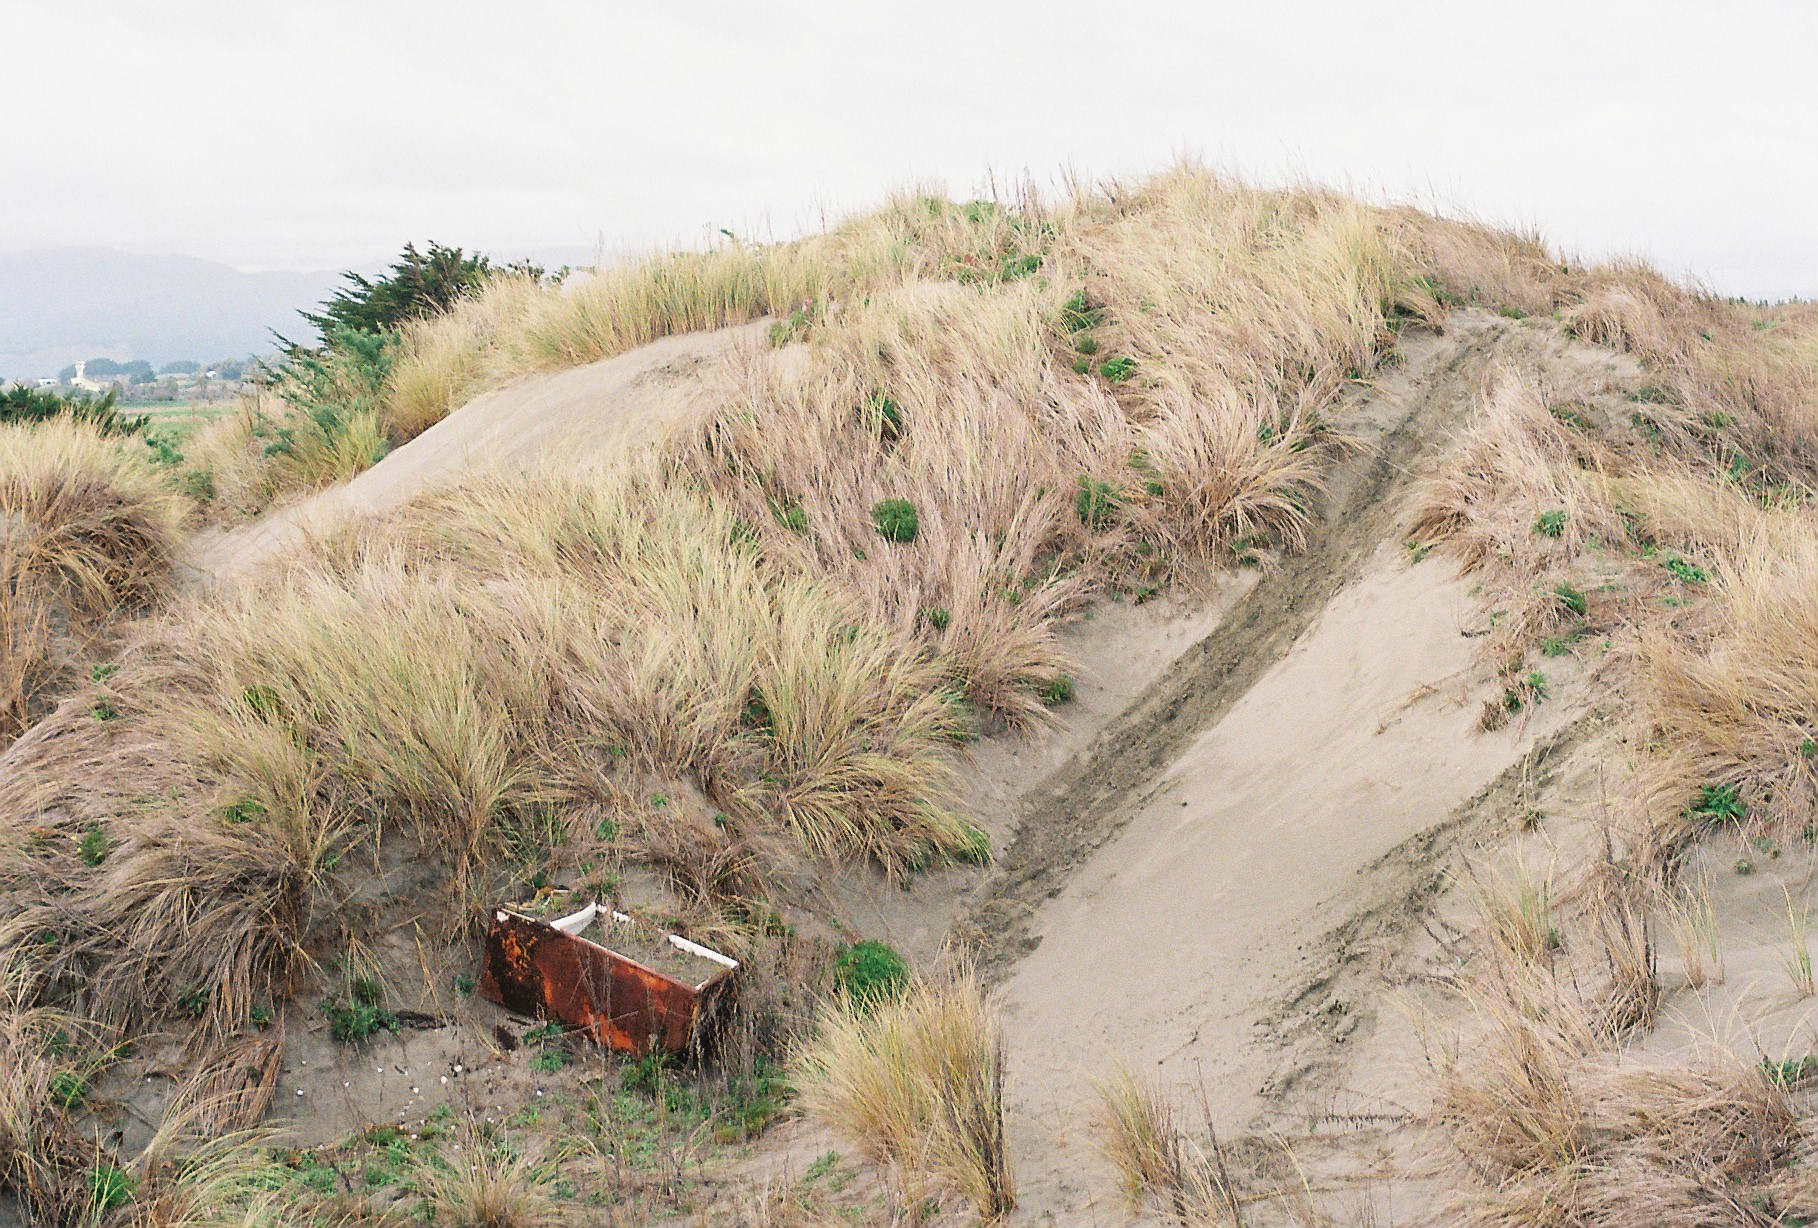 An unwanted fridge on the dunes